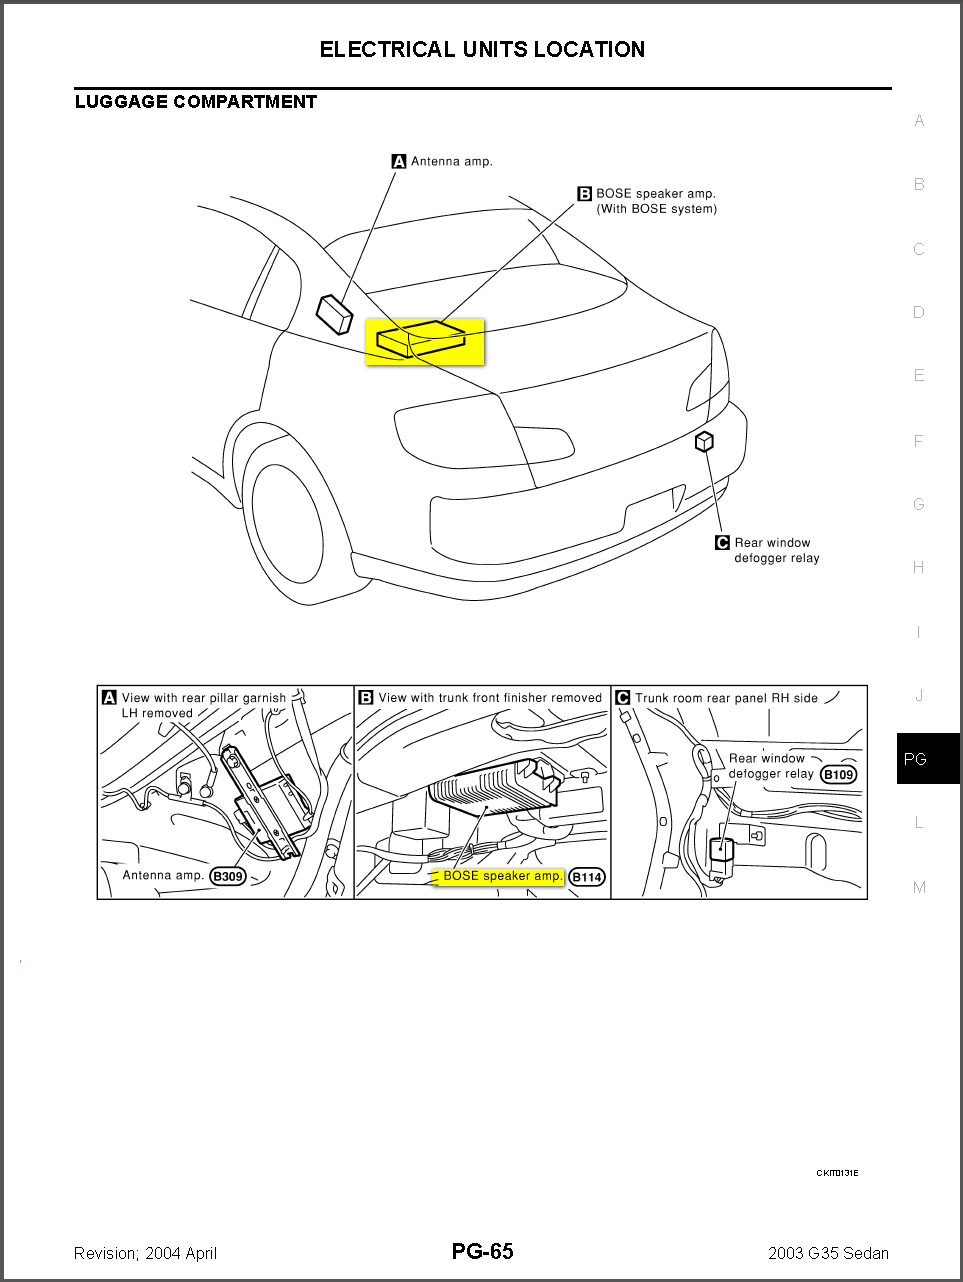 2003 infiniti g35 fuse box diagram eHONhwg g35 fuse box wiring diagram simonand 2006 infiniti g35 coupe fuse box diagram at soozxer.org